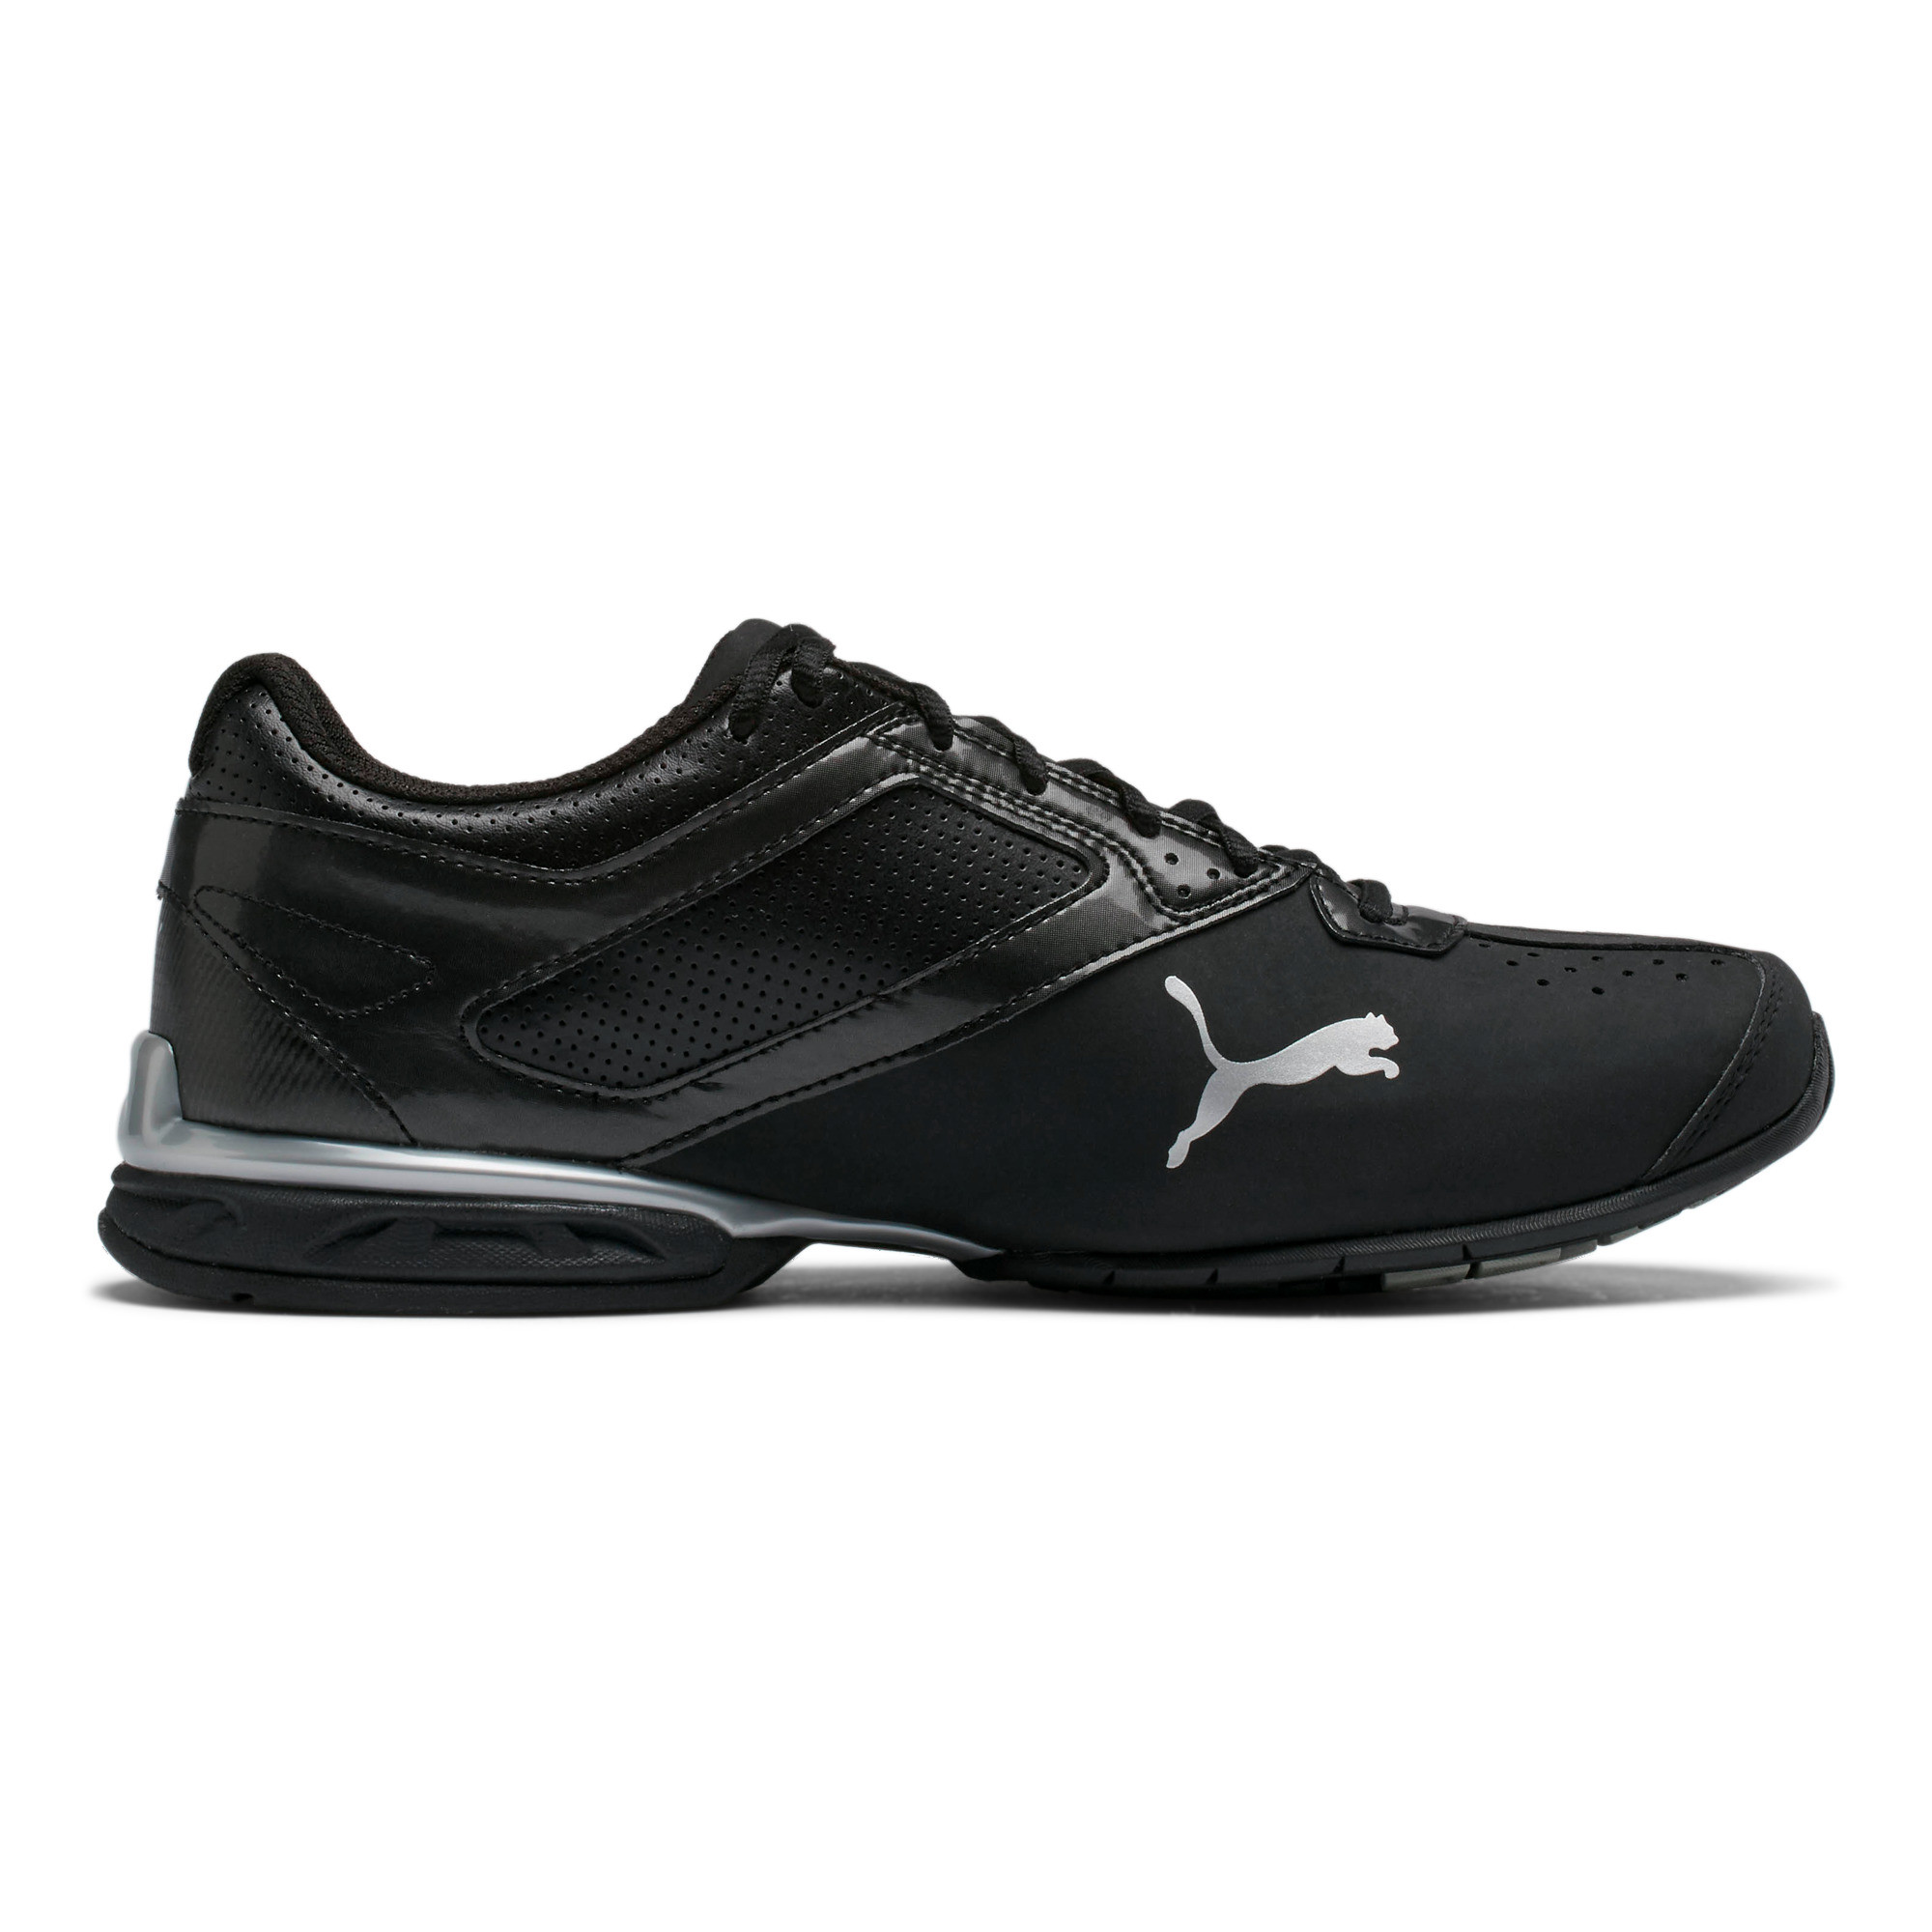 PUMA-Tazon-6-FM-Men-039-s-Sneakers-Men-Shoe-Running thumbnail 15